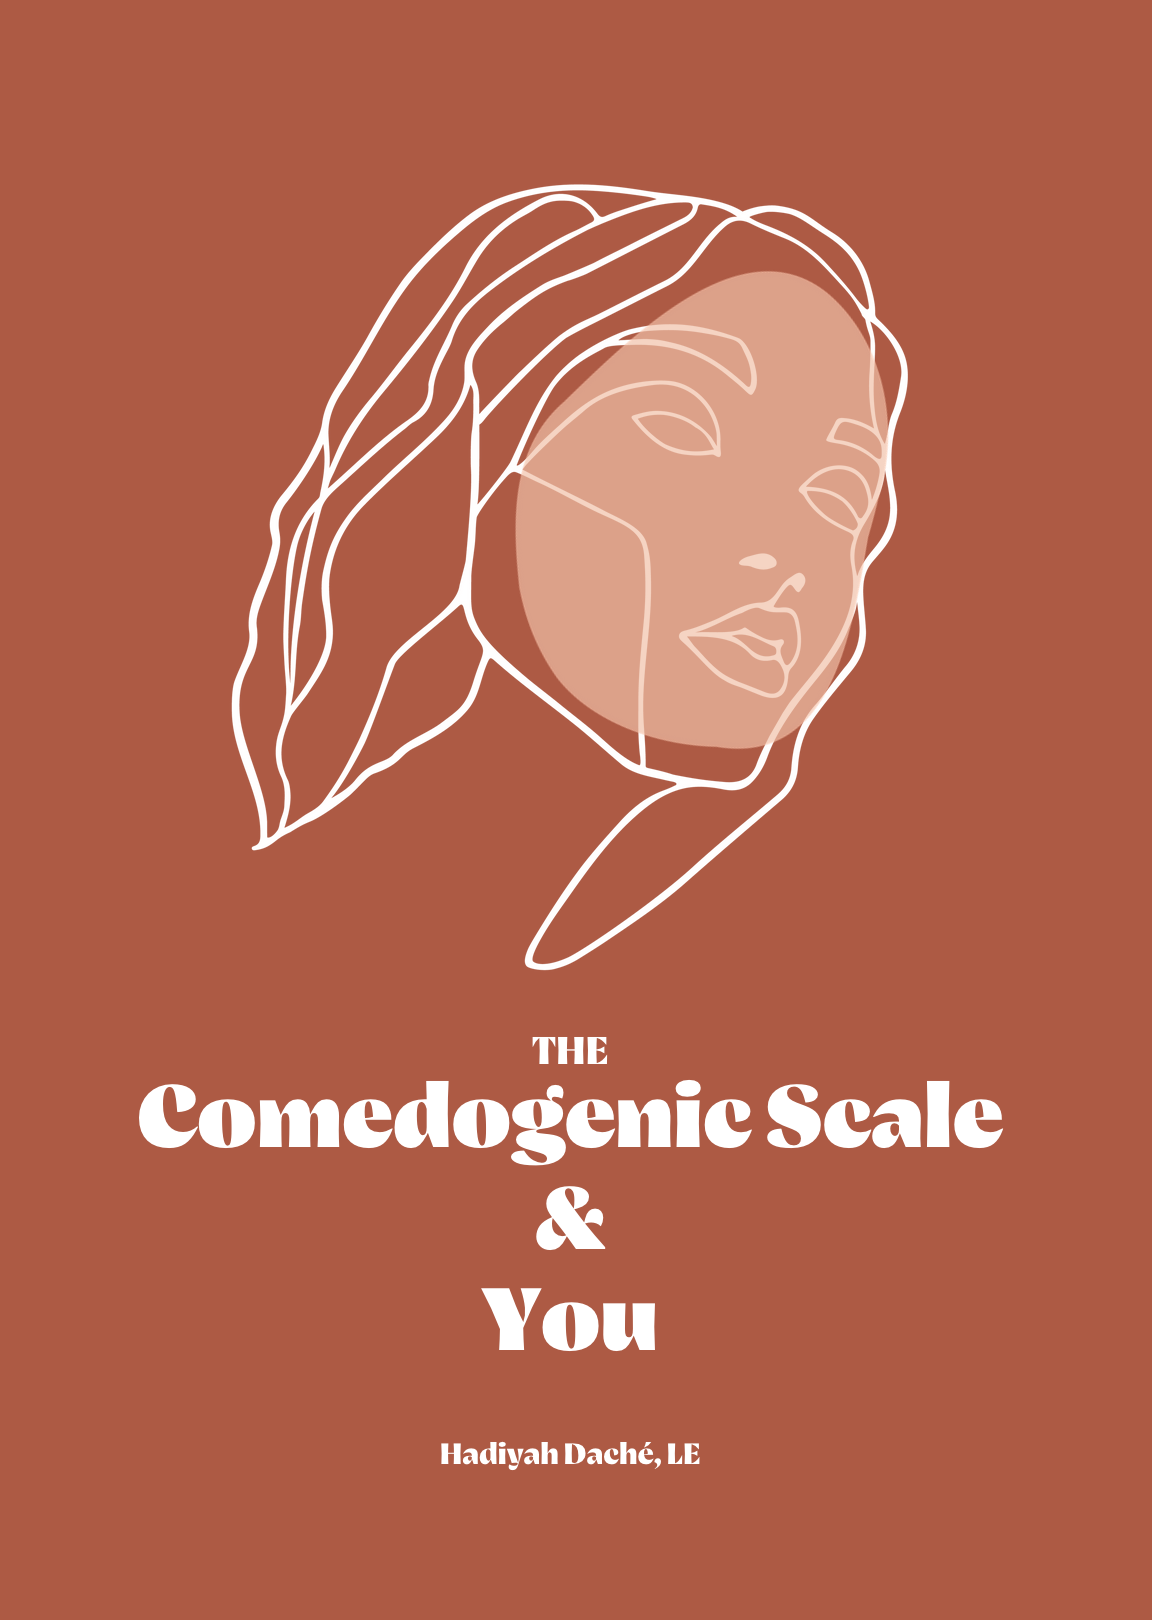 The Comedogenic Scale & You: A Free Guide